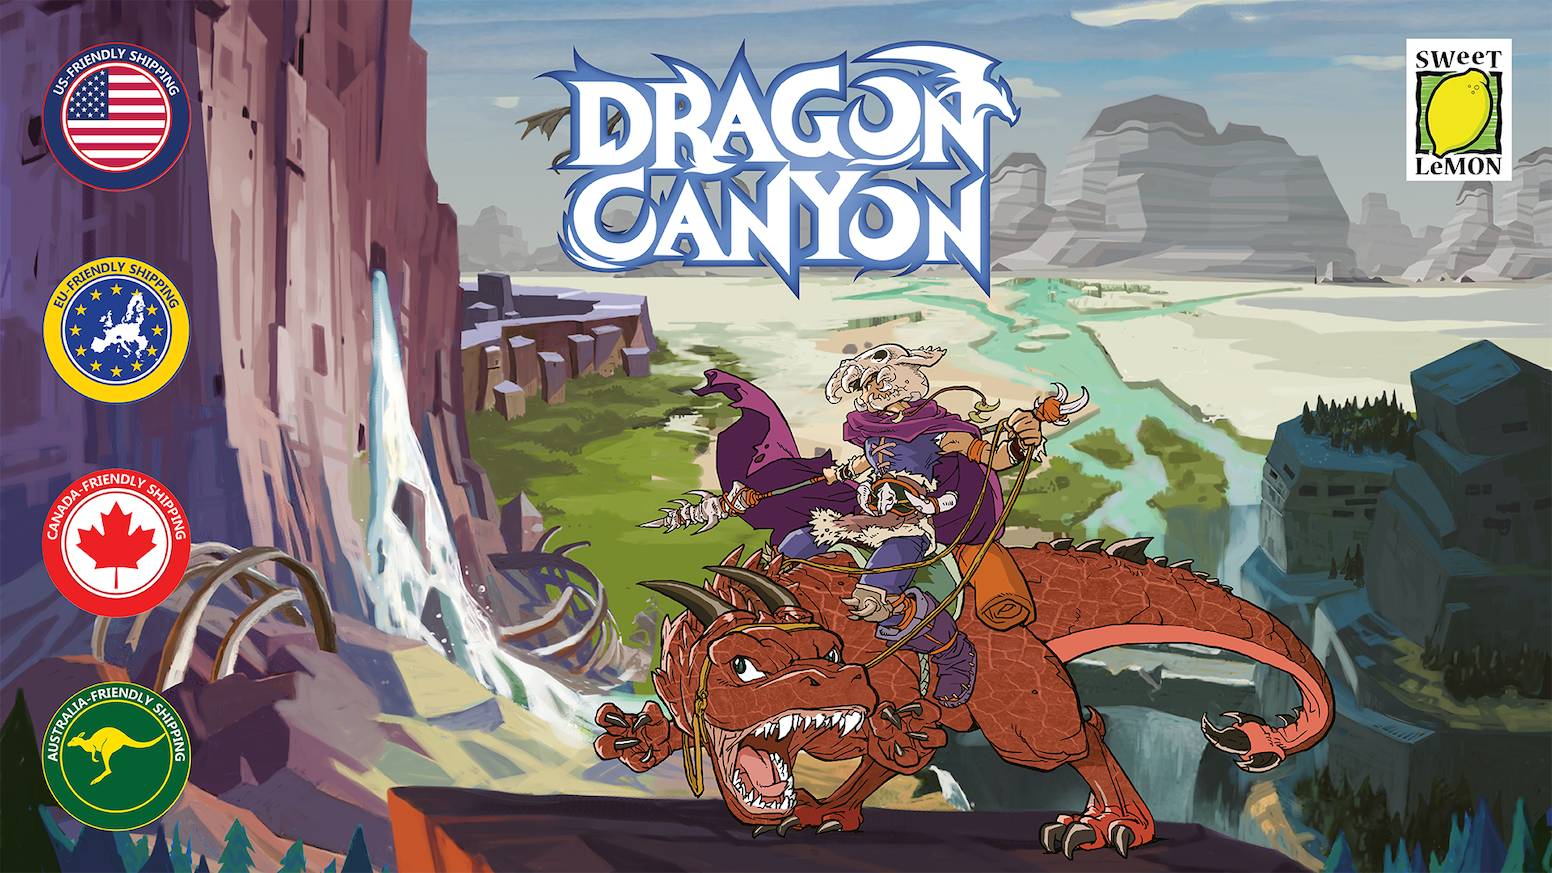 A light skirmish game of tricks and traps for 1-5 players in 30 minutes. Summon mighty dragons and race to claim victory for your clan.